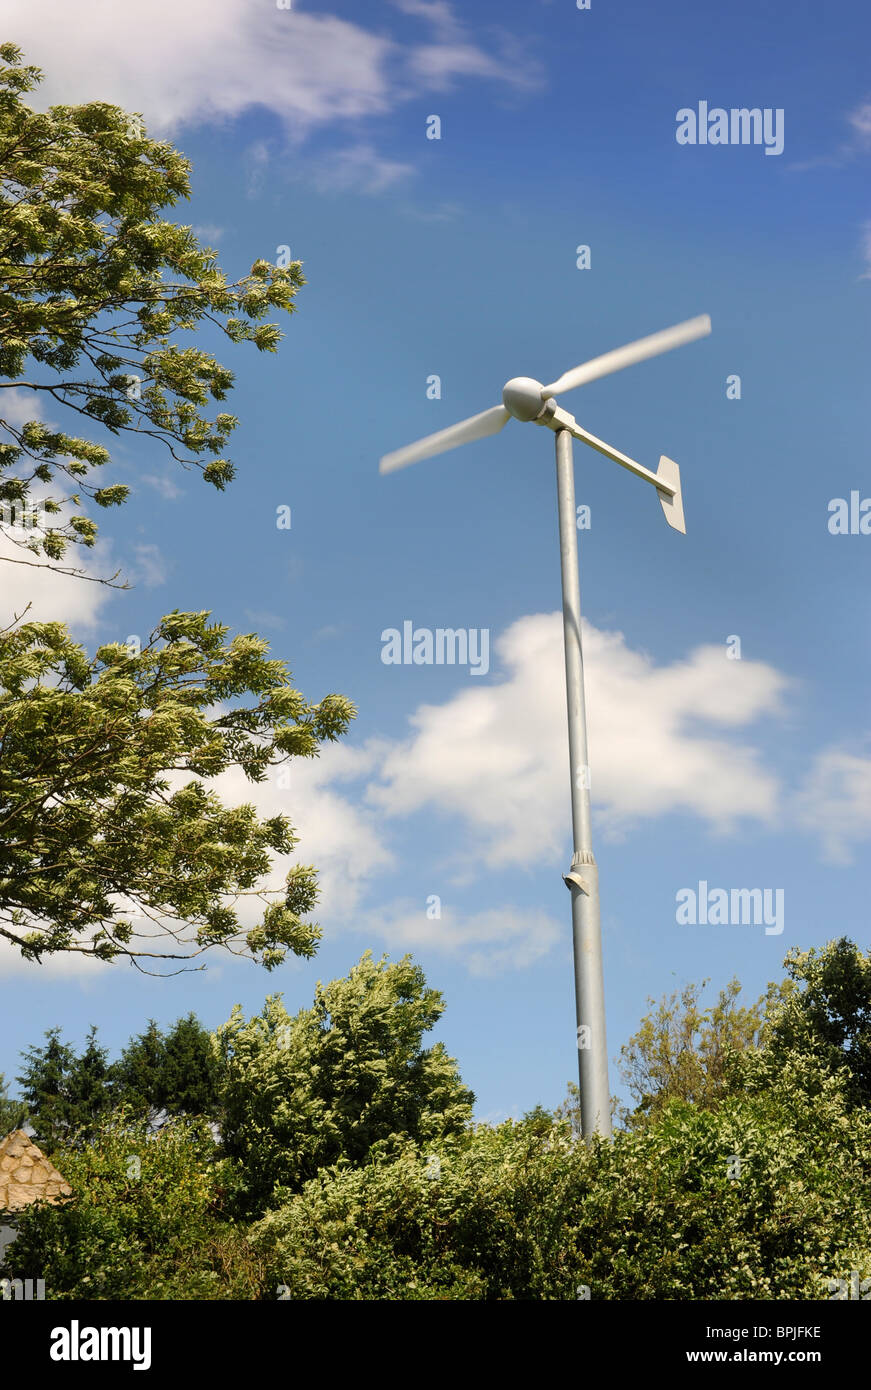 A wind turbine in the garden of a family home in Buckinghamshire UK - Stock Image